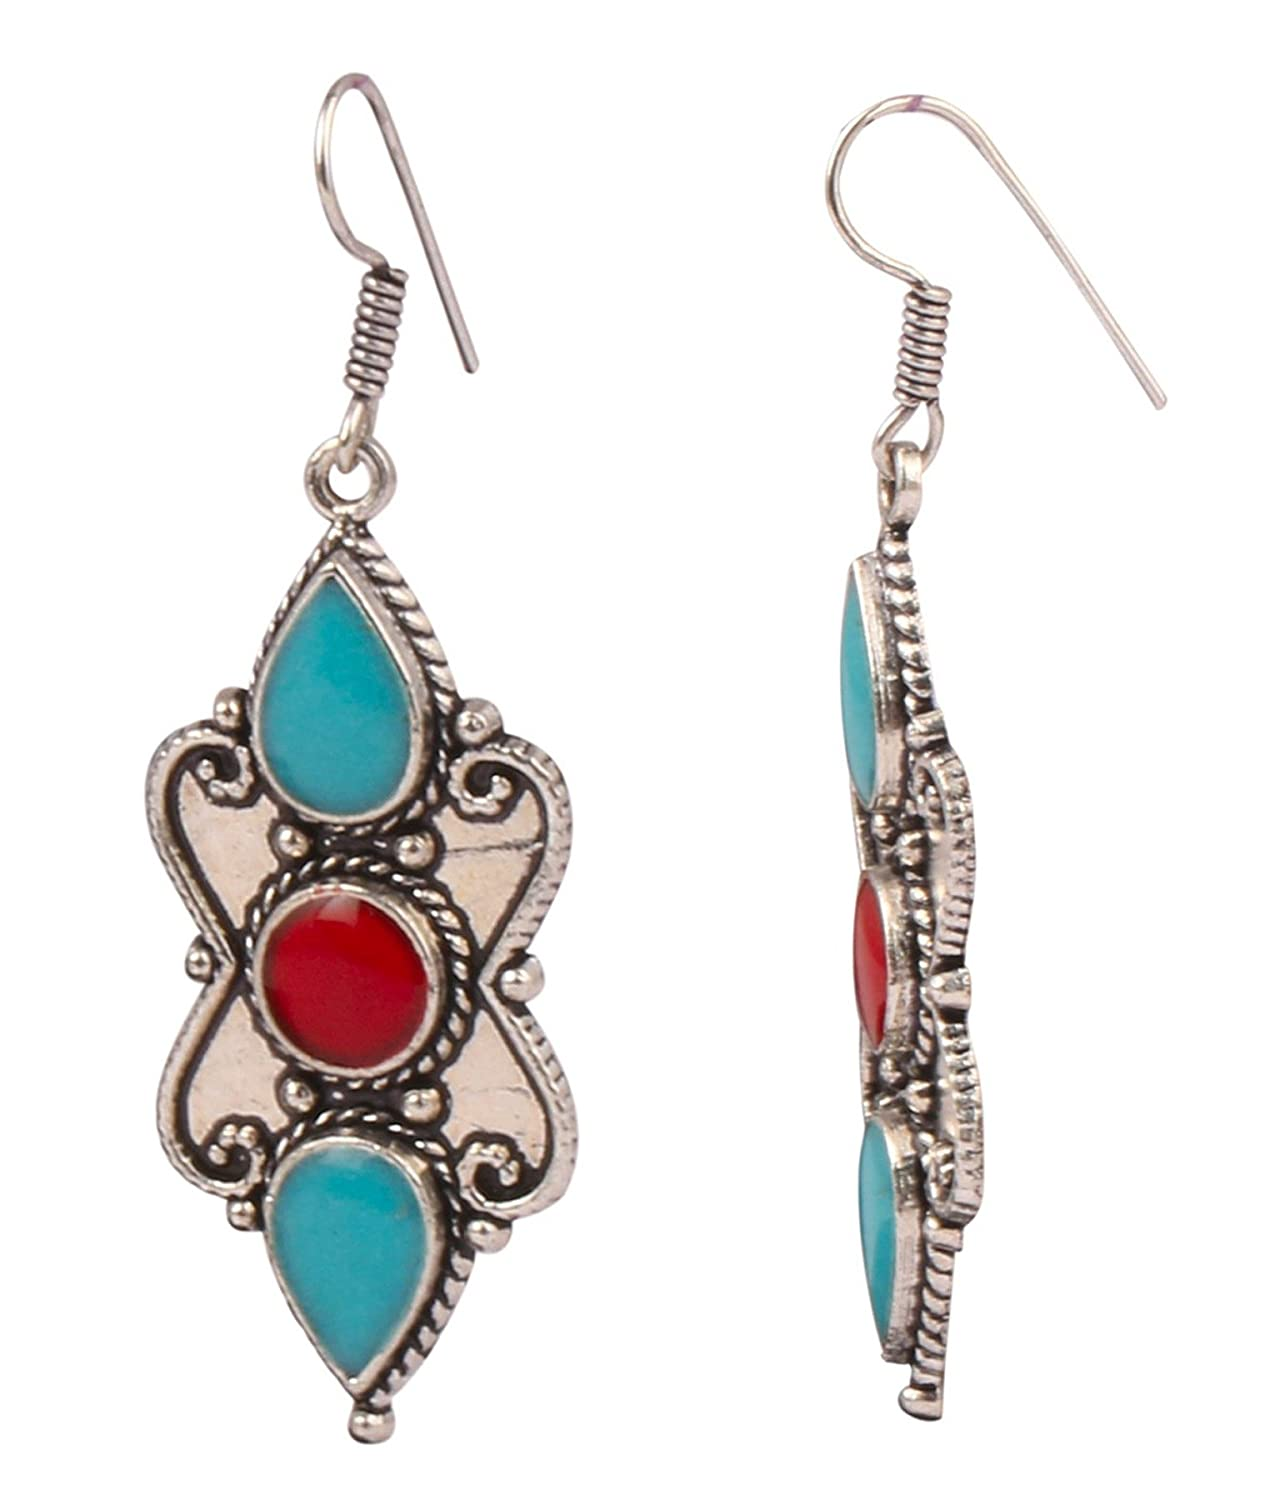 Sansar India Boho Silver Plated Oxidized Colored Drop Indian Earrings Jewelry for Girls and Women